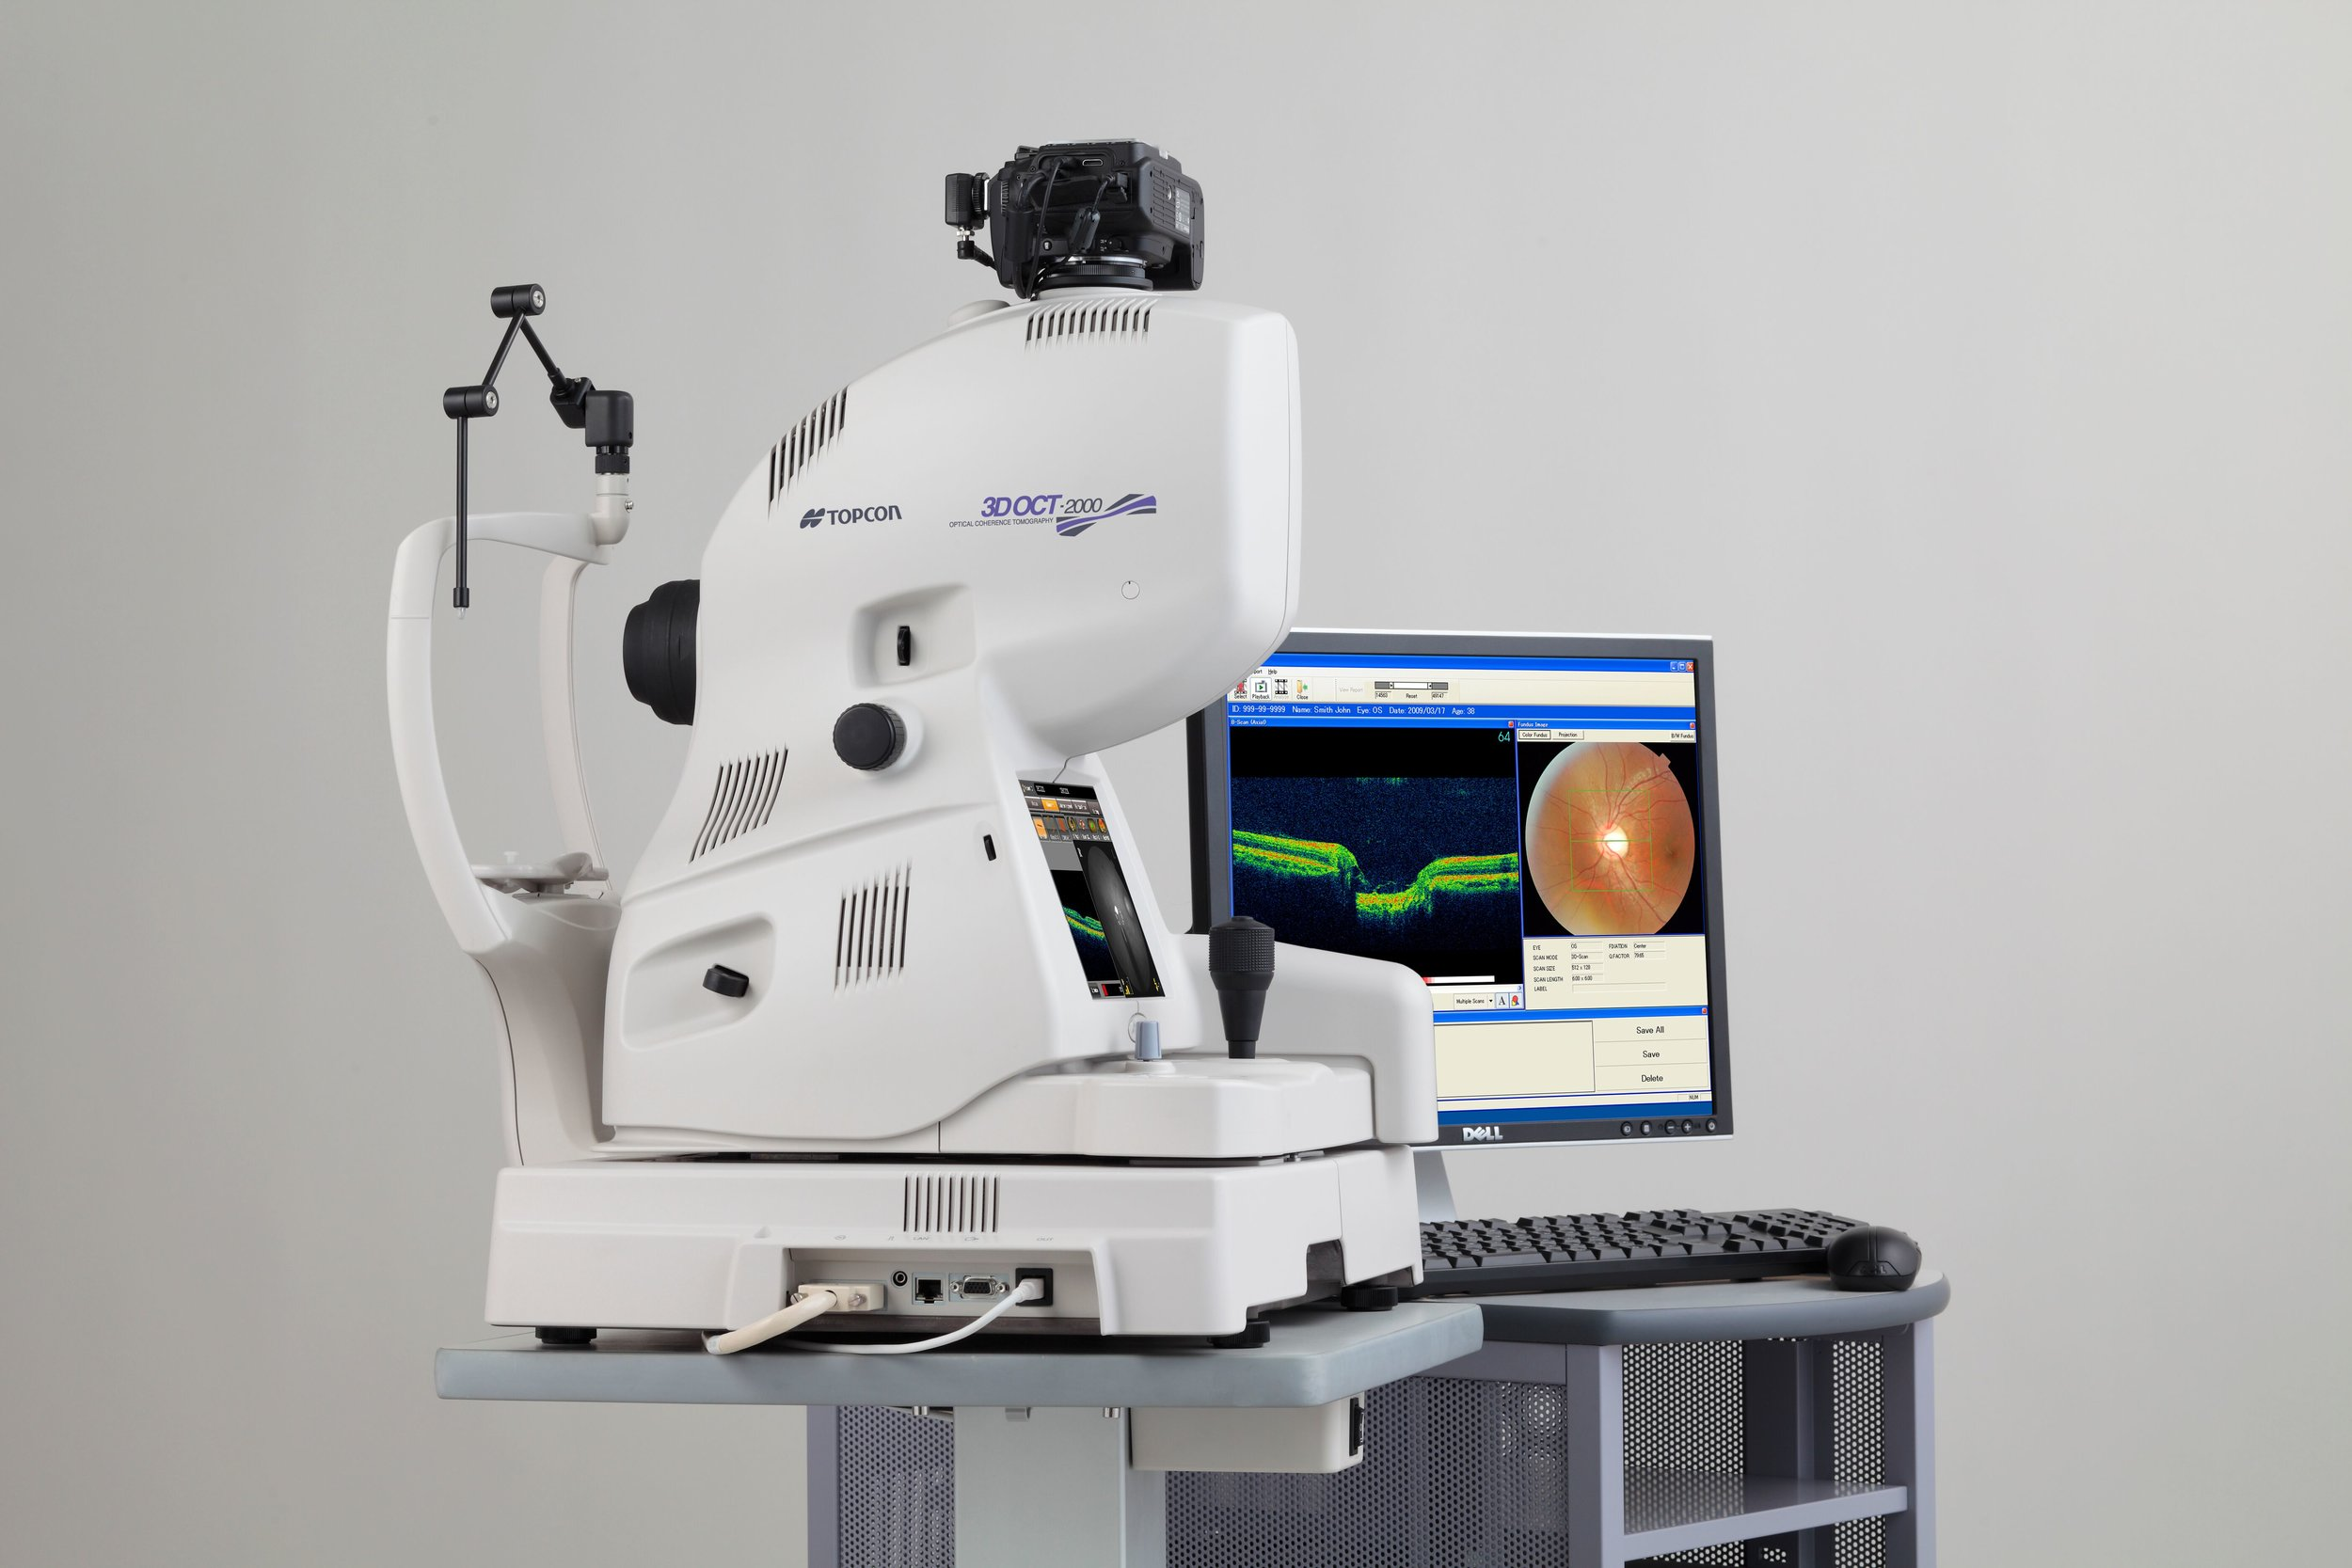 3D OCT Screening - Did you know that 3D OCT screening of your eyes can diagnose potentially serious conditions that can affect your eyesight and overall well-being?We have just invested in a top of the range piece of diagnostic equipment that can detect a number of common eye conditions, such as glaucoma, AMD and diabetic retinopathy, during a routine eye test.Call us today for more information on 09064 76111